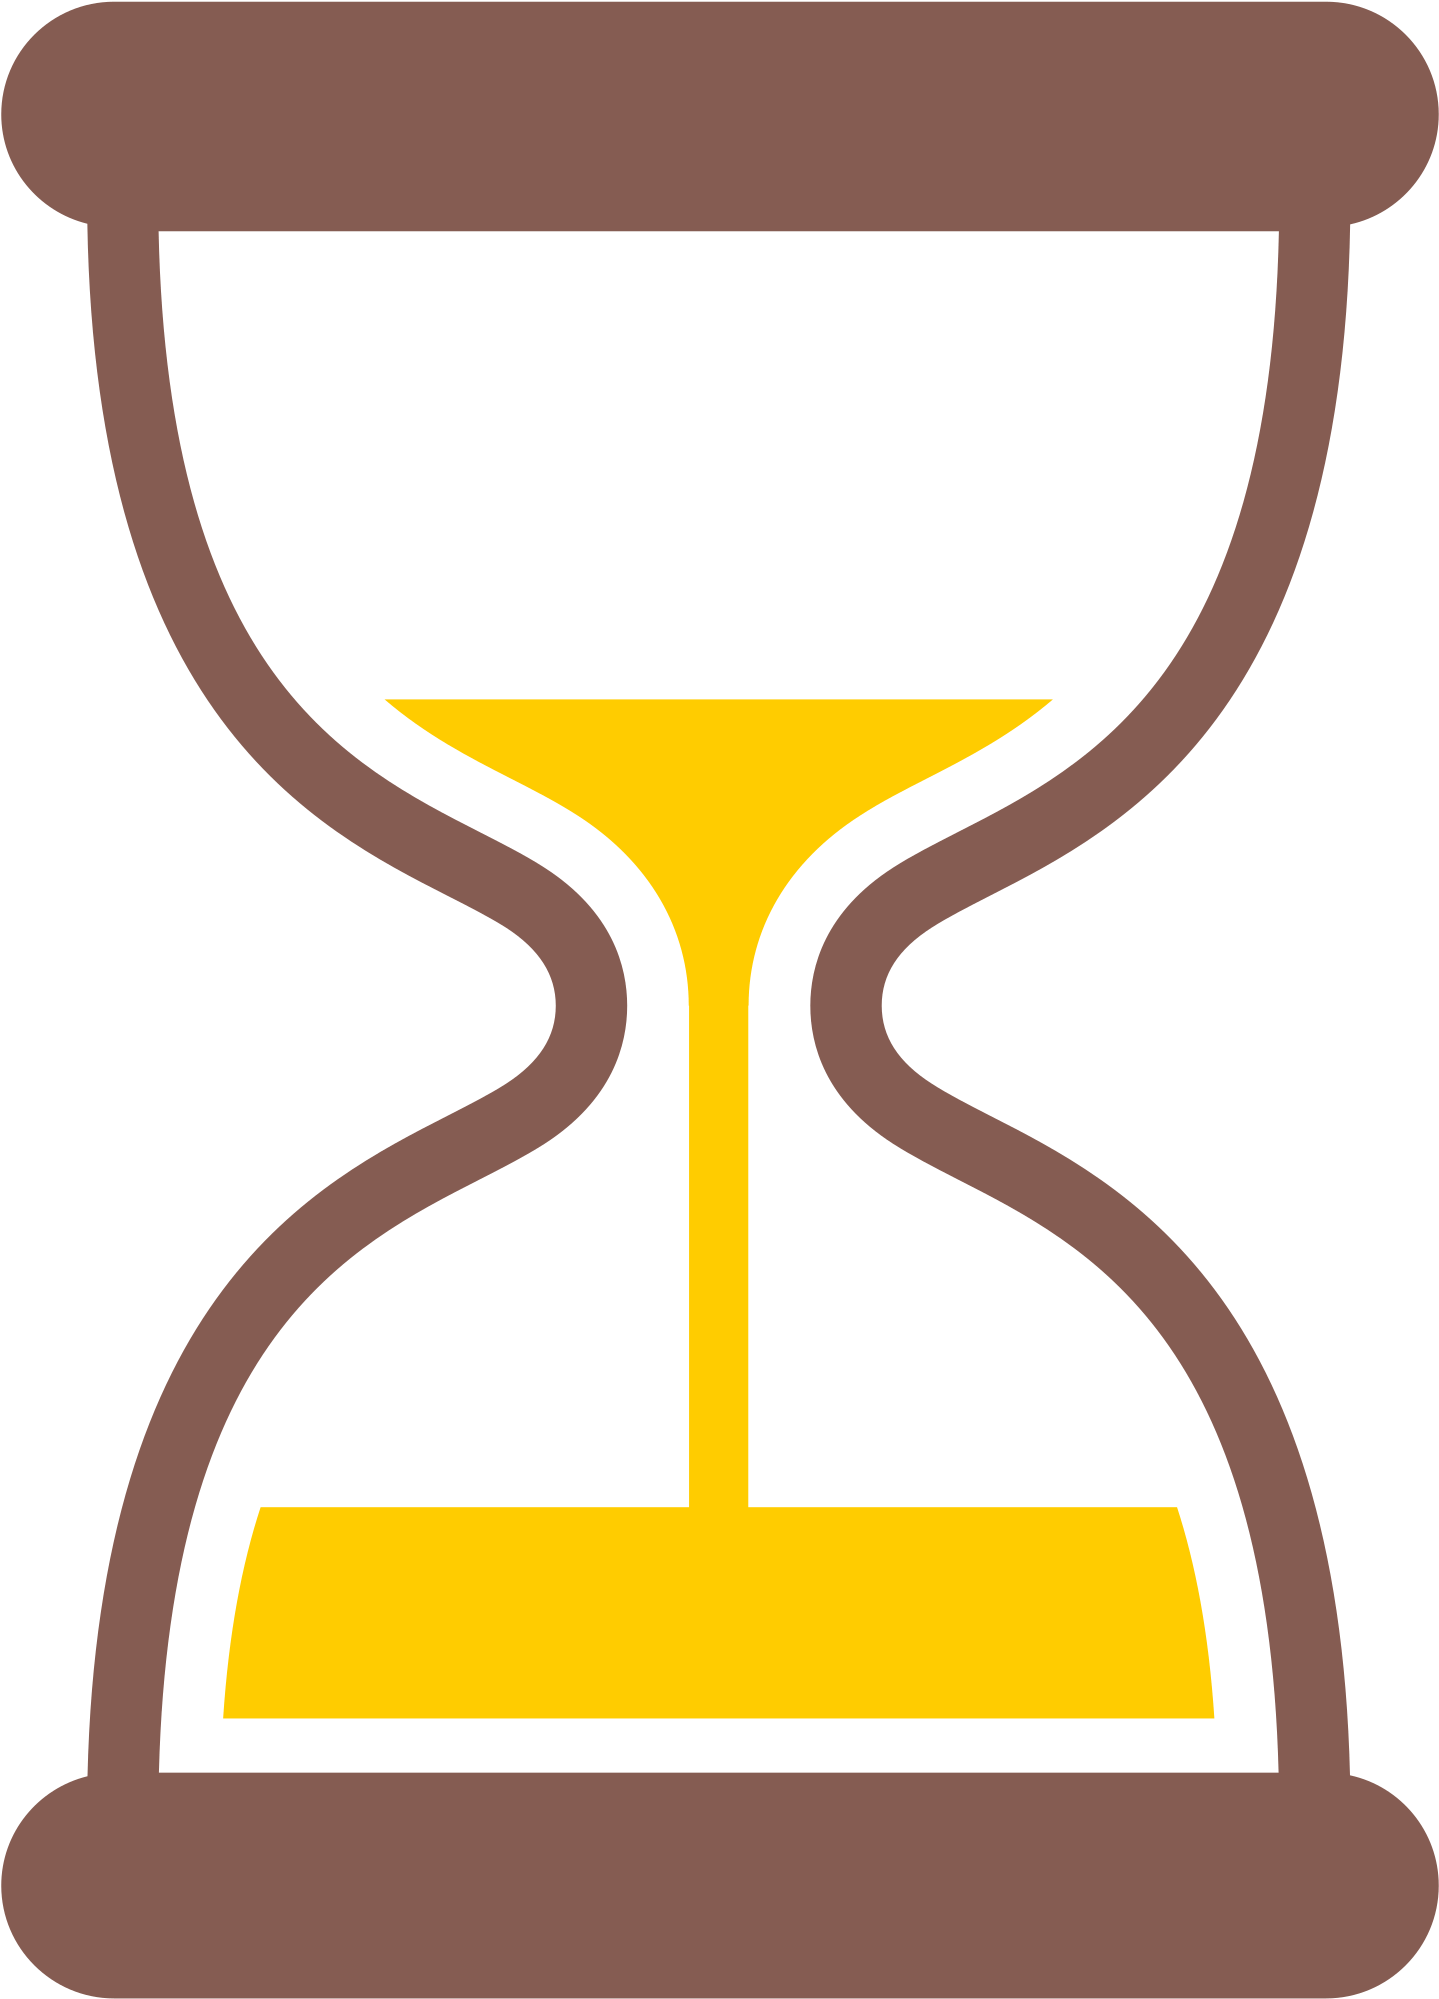 hight resolution of hourglass clipart yellow hourglass timer emoji png download 2000x2000 png download